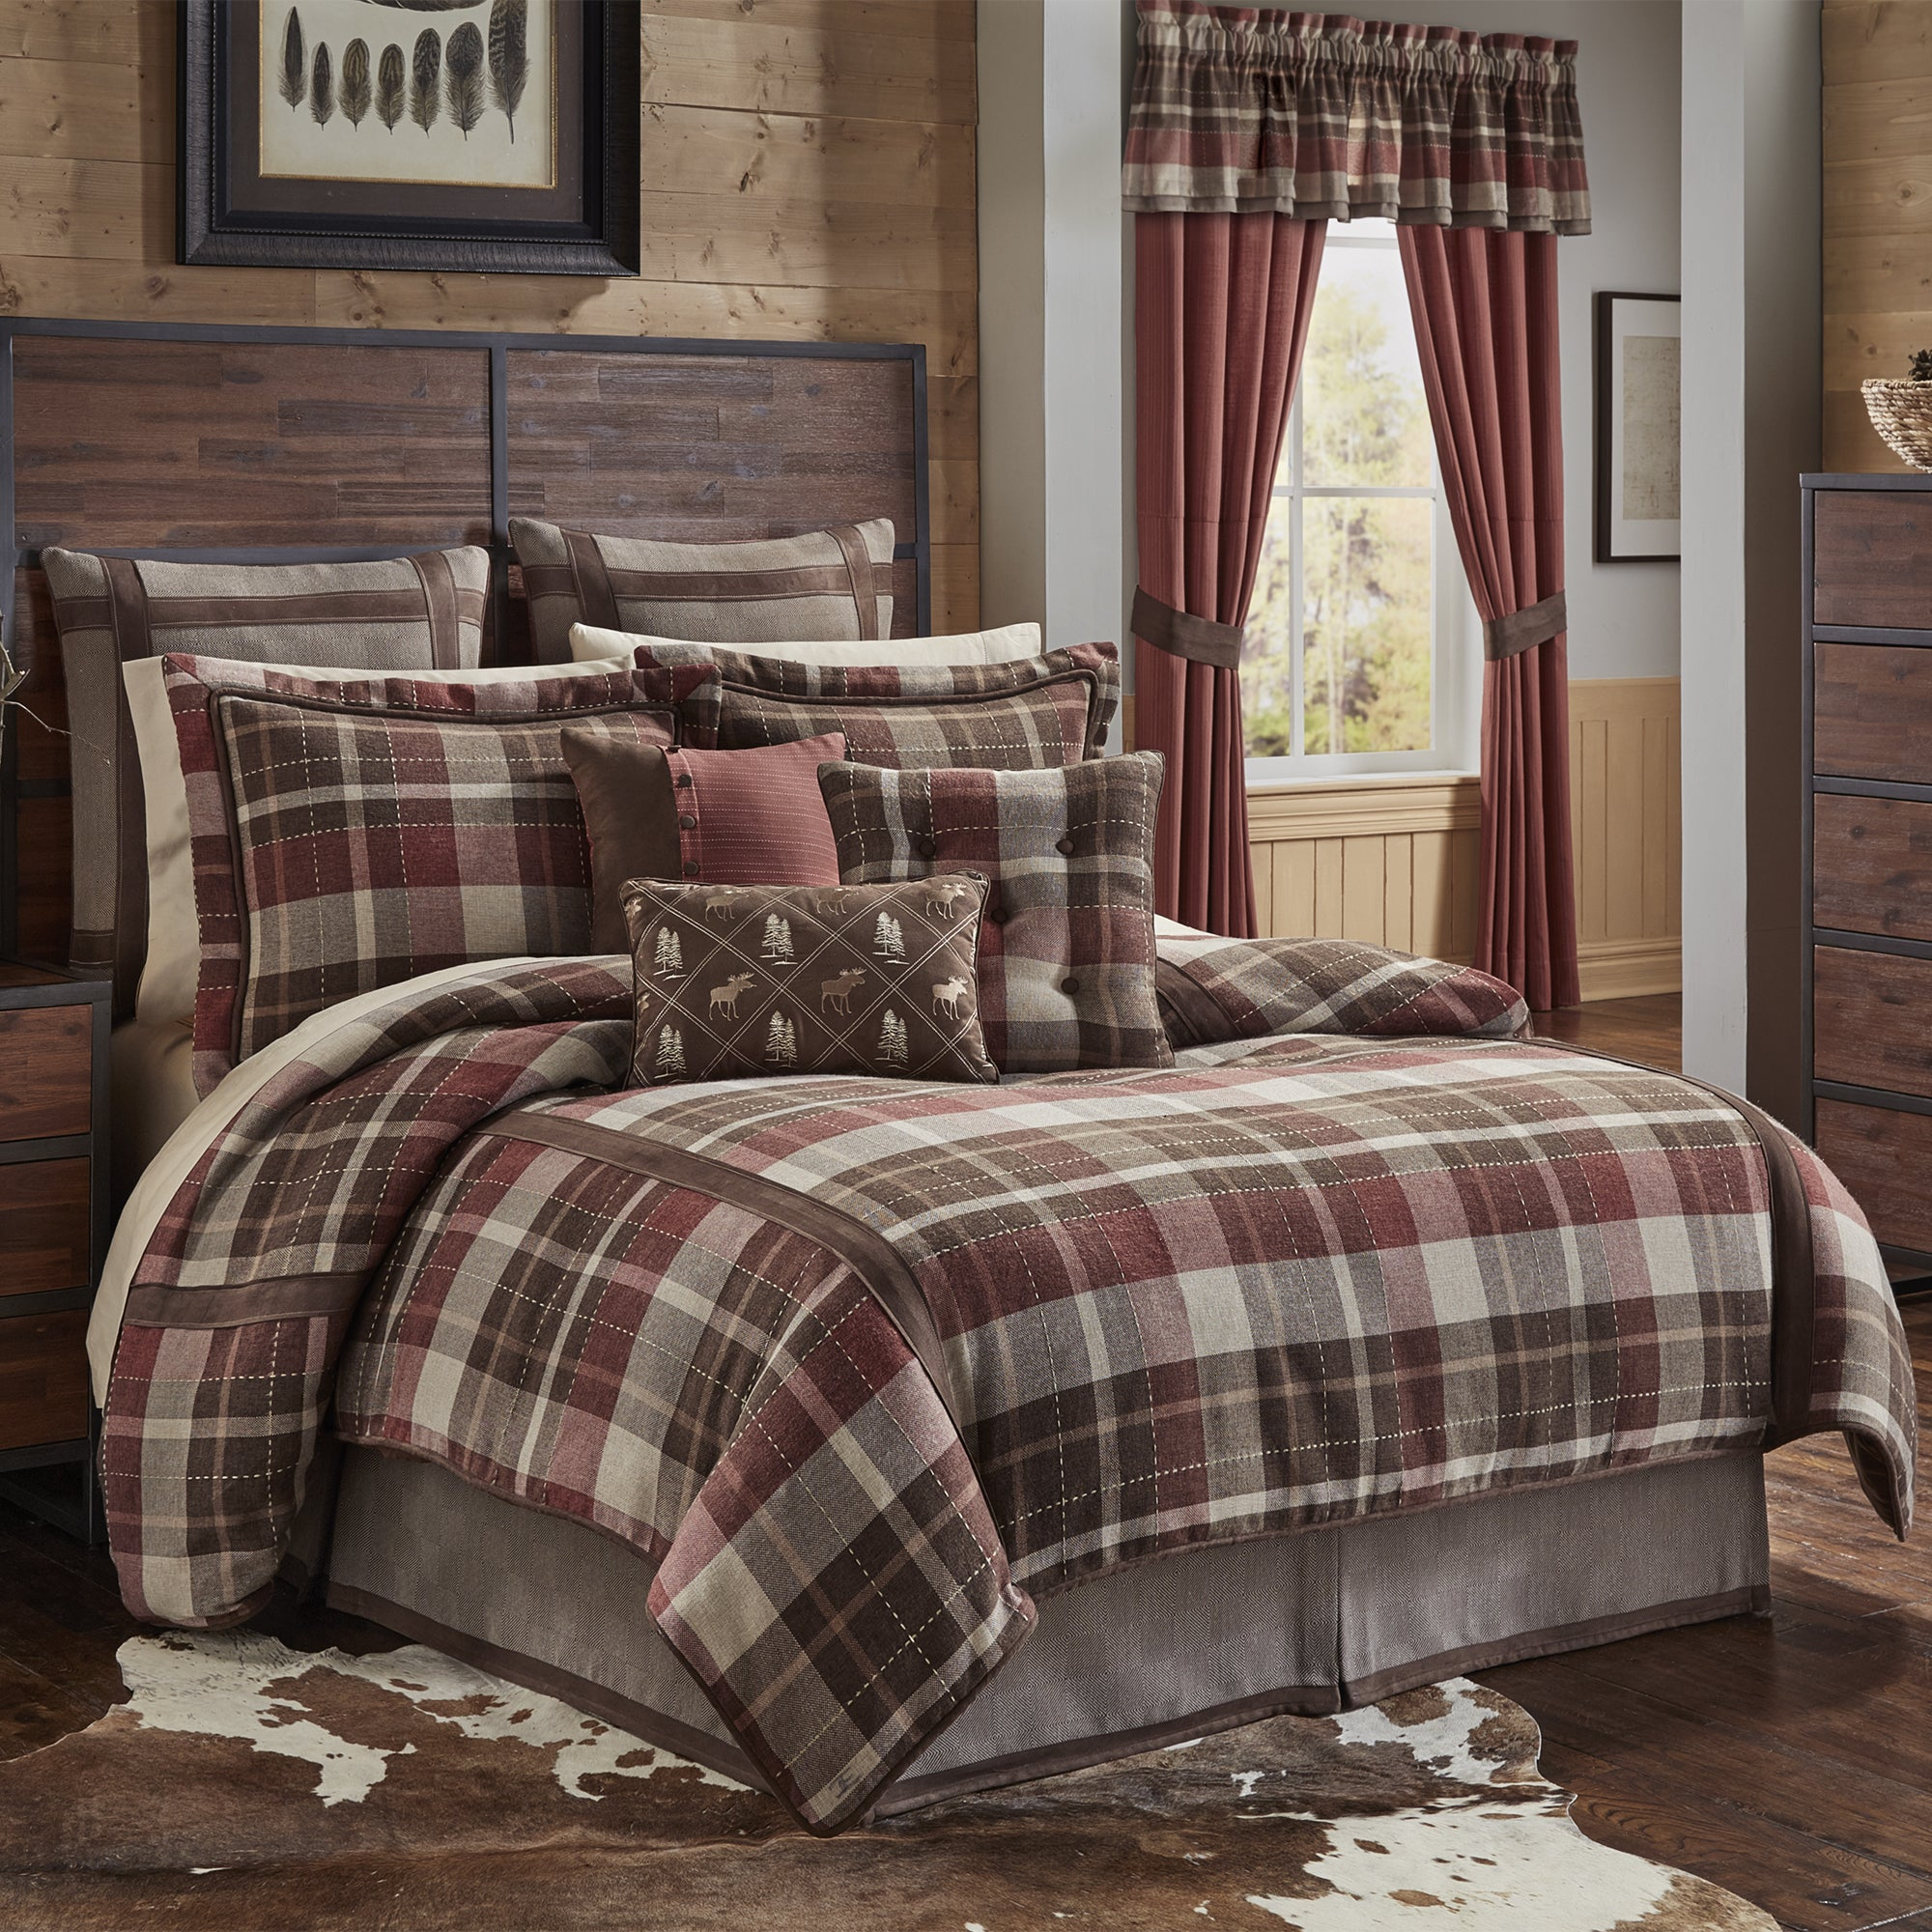 piece sets bath today overstock croscill shipping product free comforter set pennington bedding